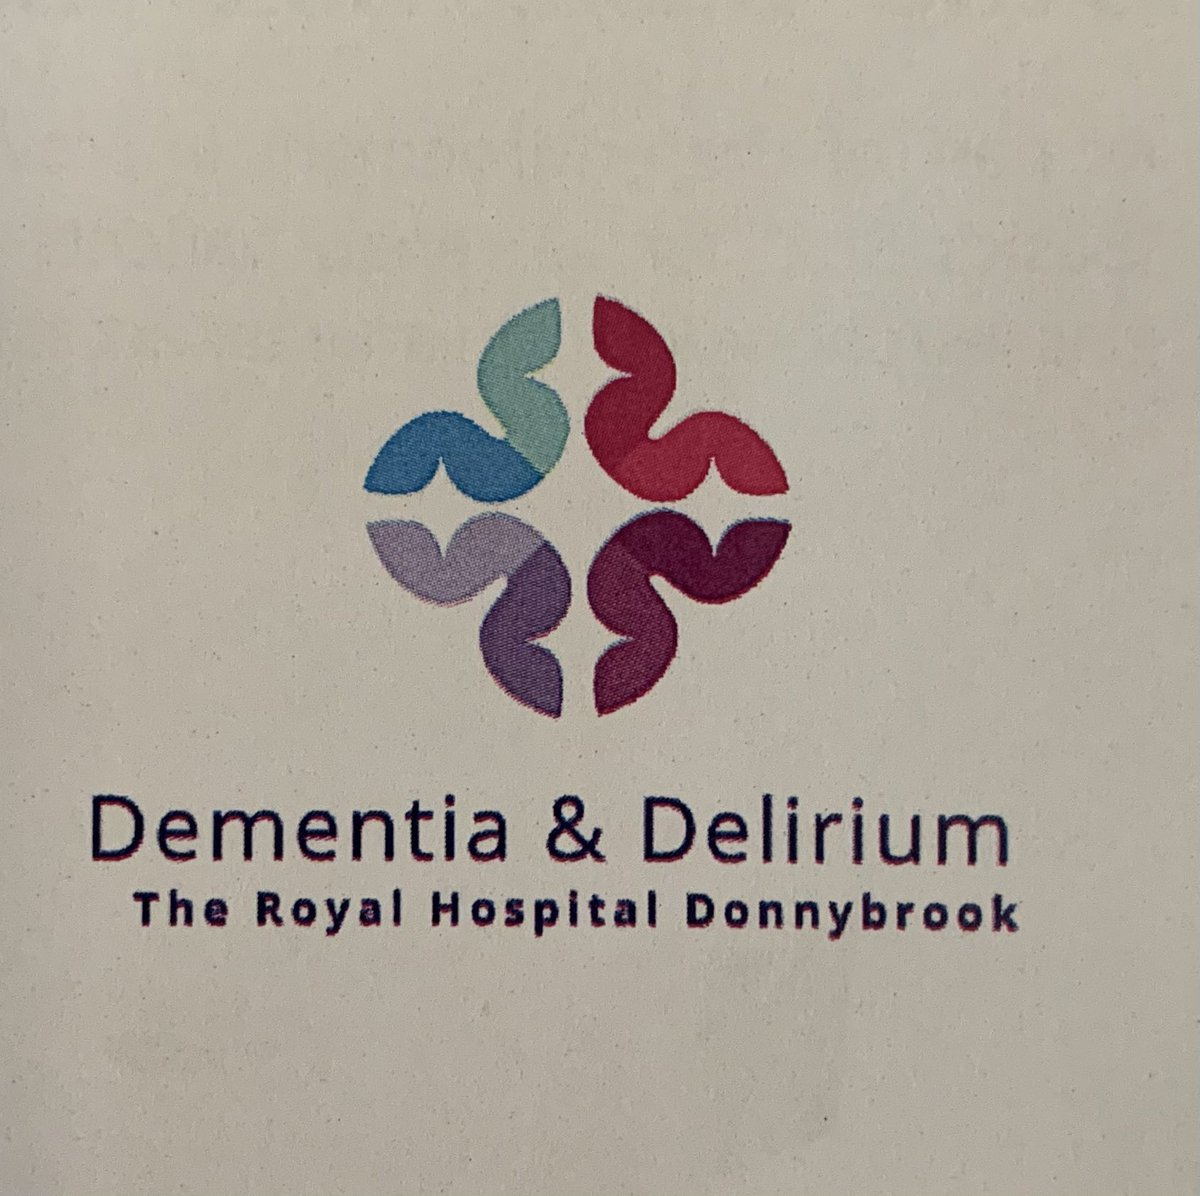 Well done to the RHD Dementia & Delirium group for their successful launch this week. The group provide staff education on delirium prevention and management & are focusing on creating a more dementia friendly environment in the RHD.